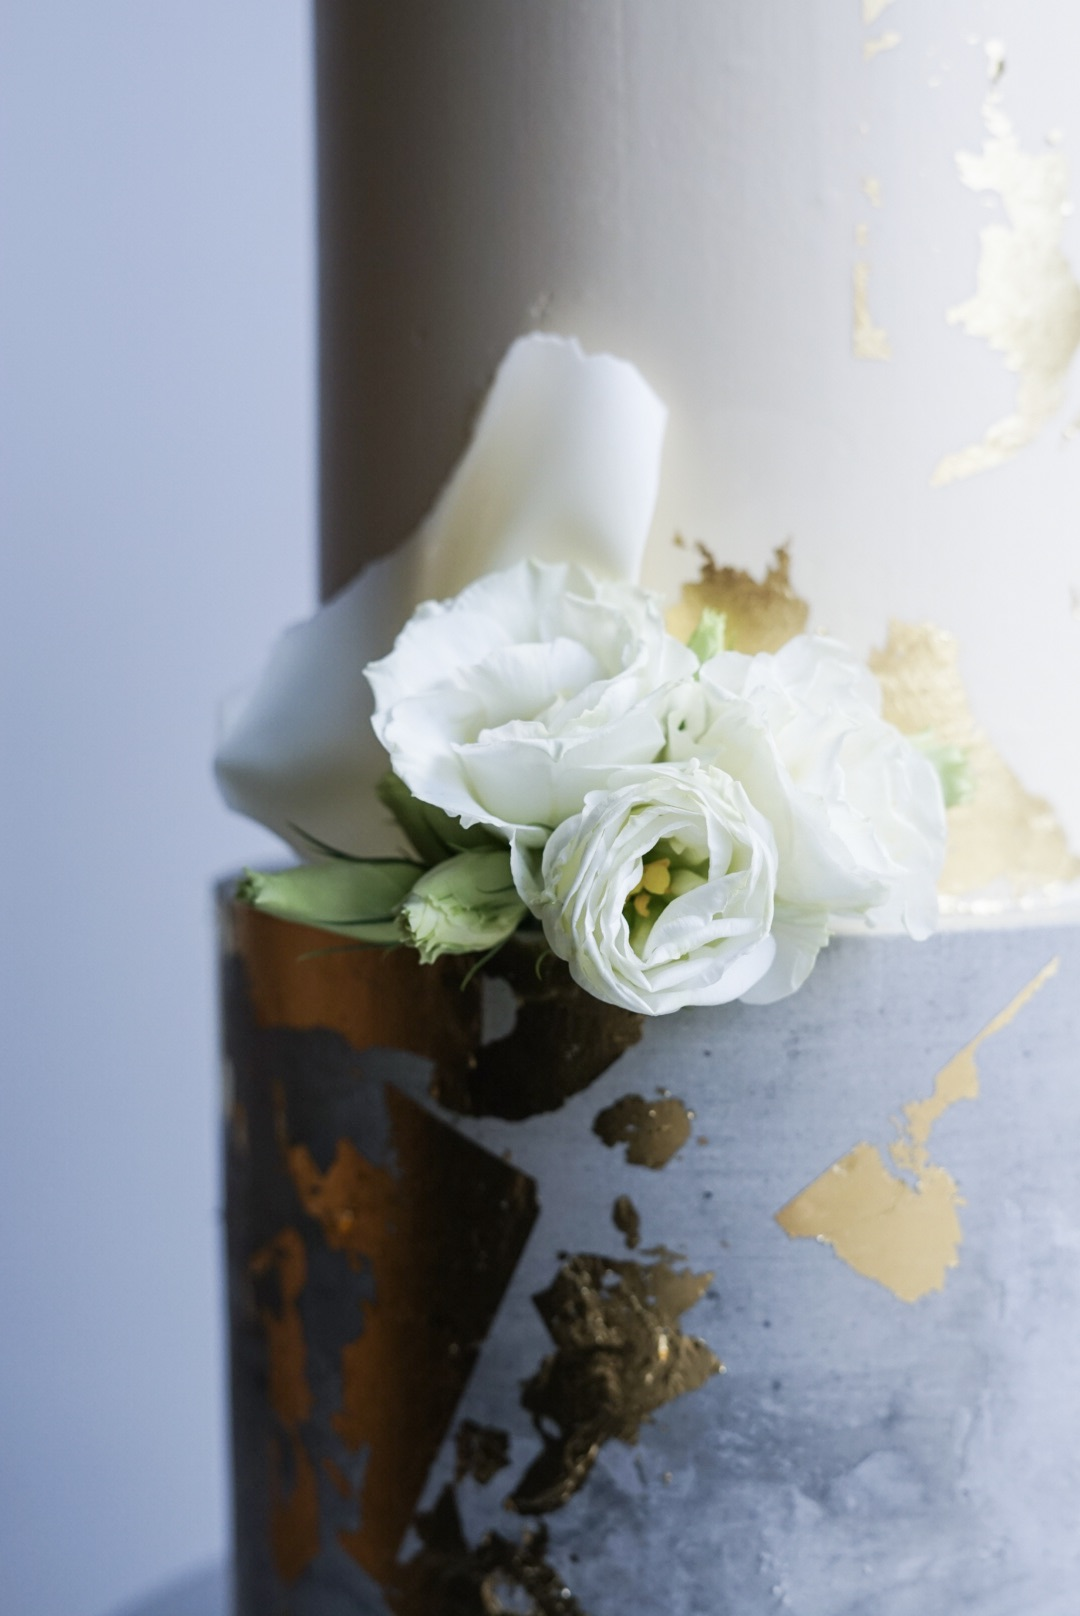 Concrete, Whit and Gold Wedding Cake